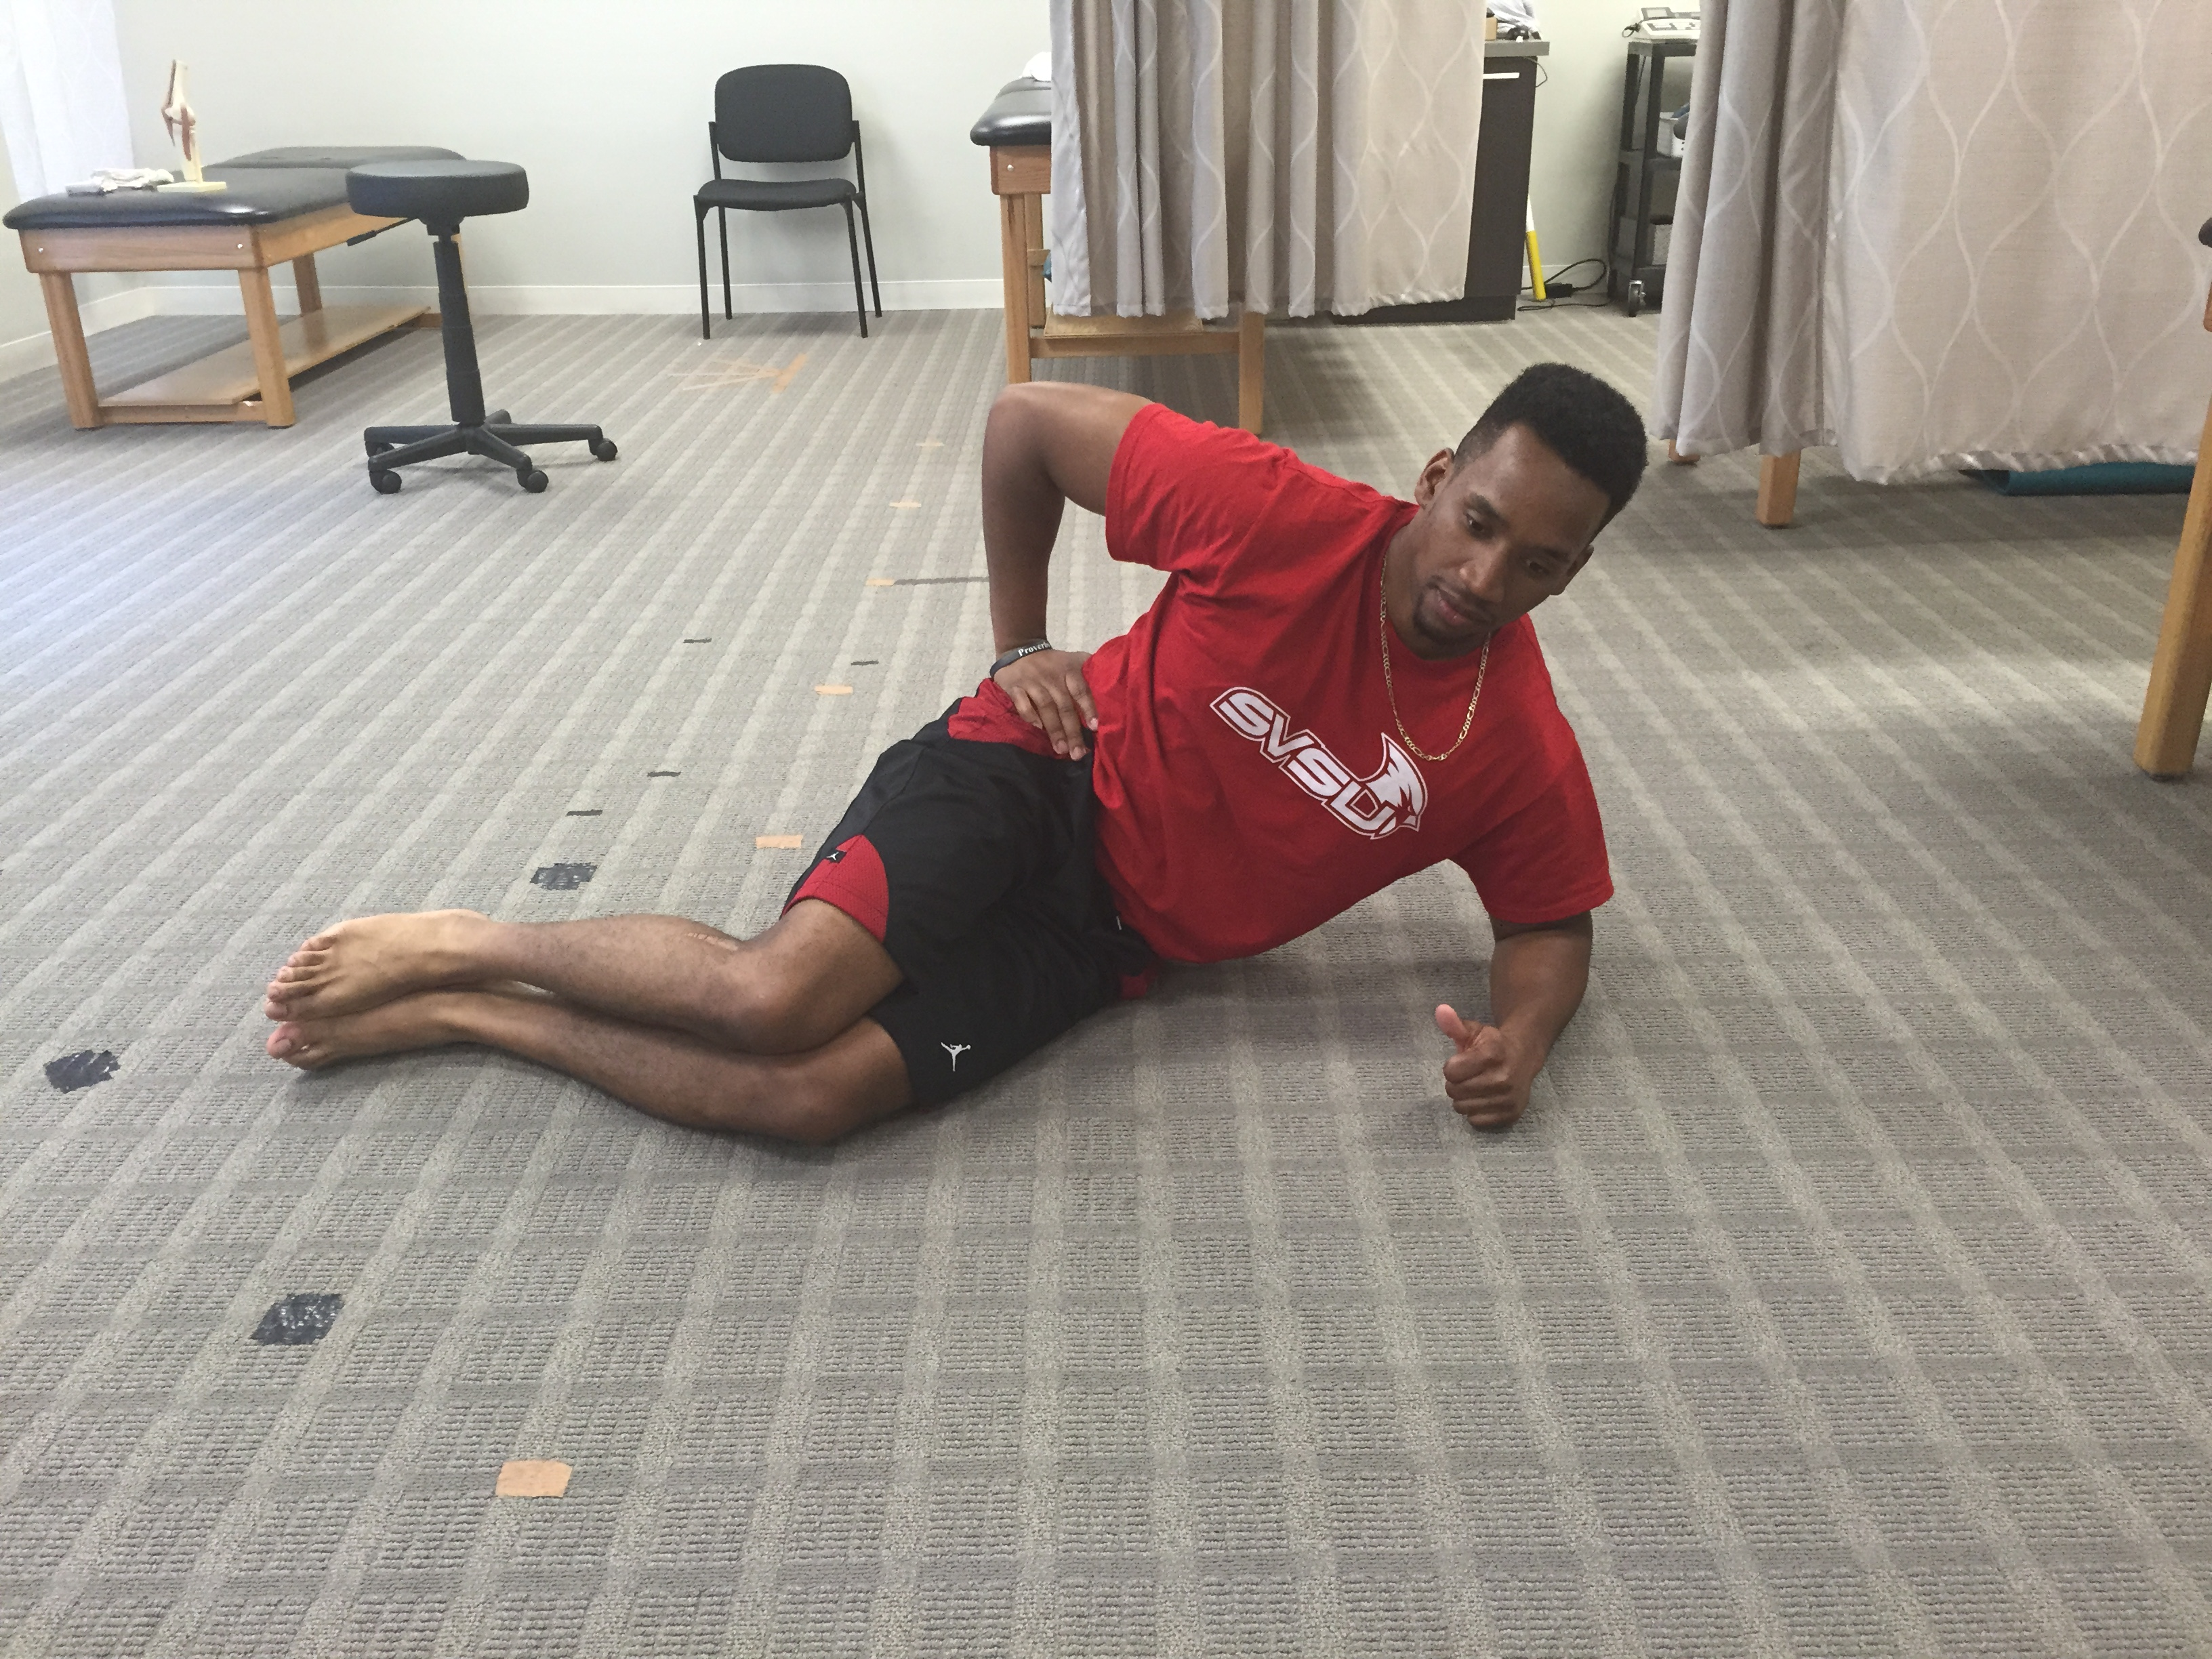 Exercises to avoid soccer injury to the hip flexor.